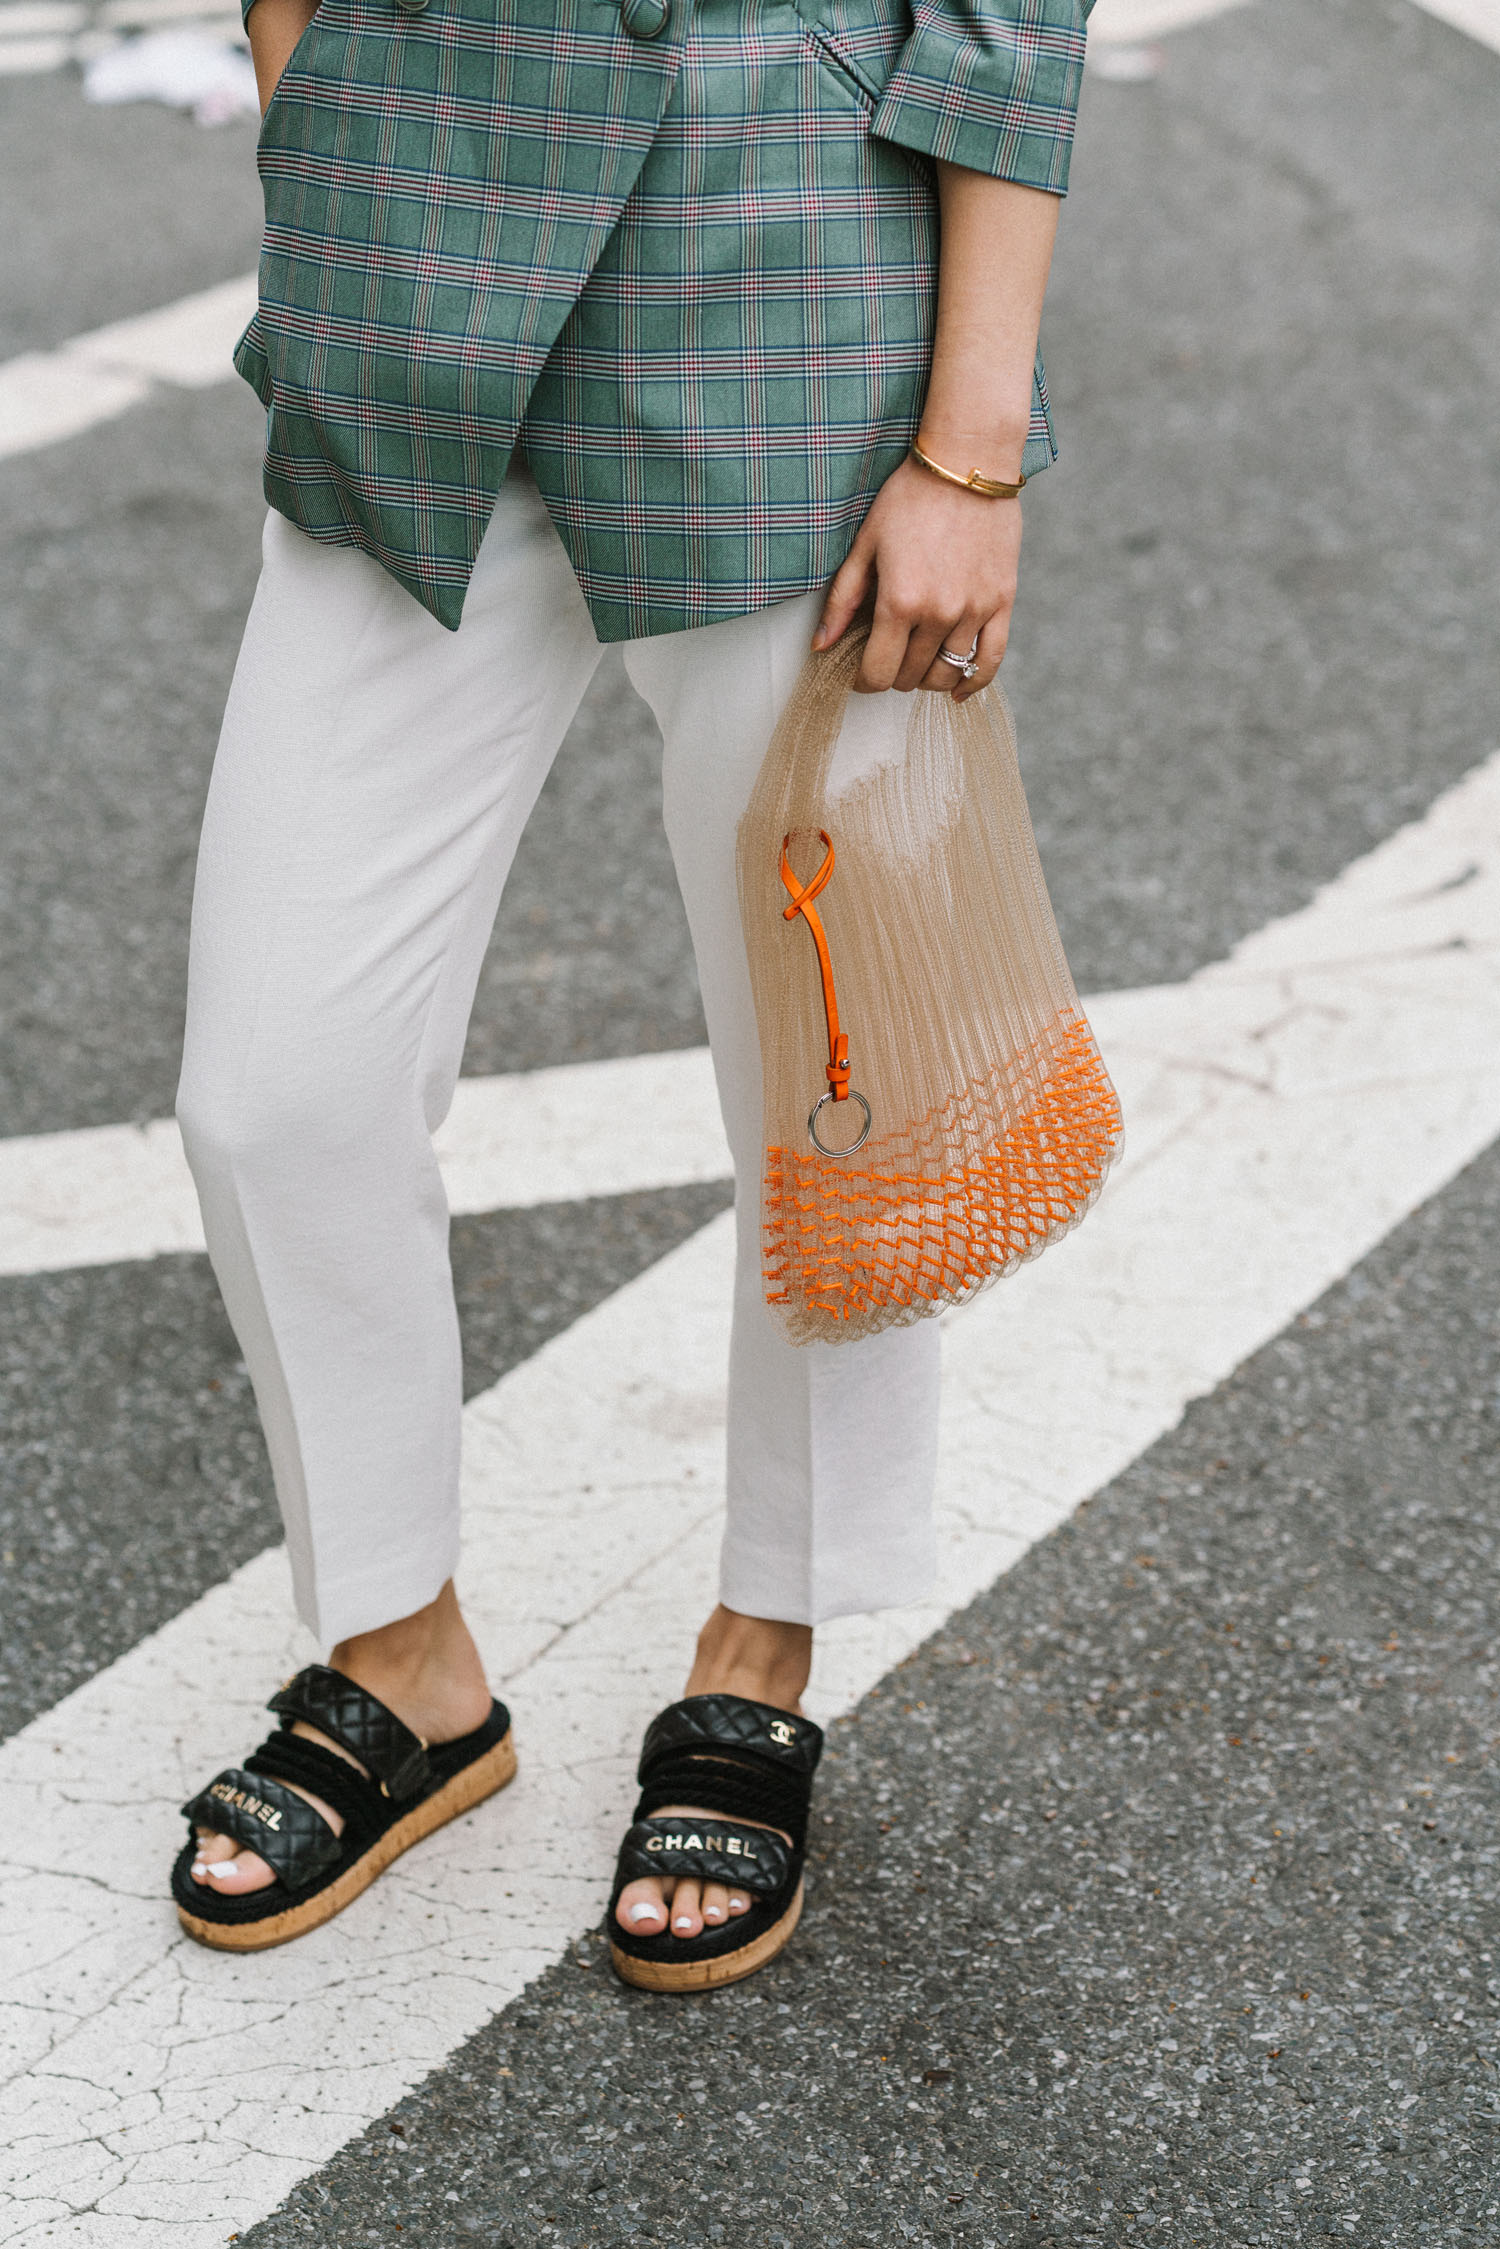 LIE Collection Blazer , Sézane Pants, CHANEL Sandals,  Jil Sander Bag , Céline Sunglasses